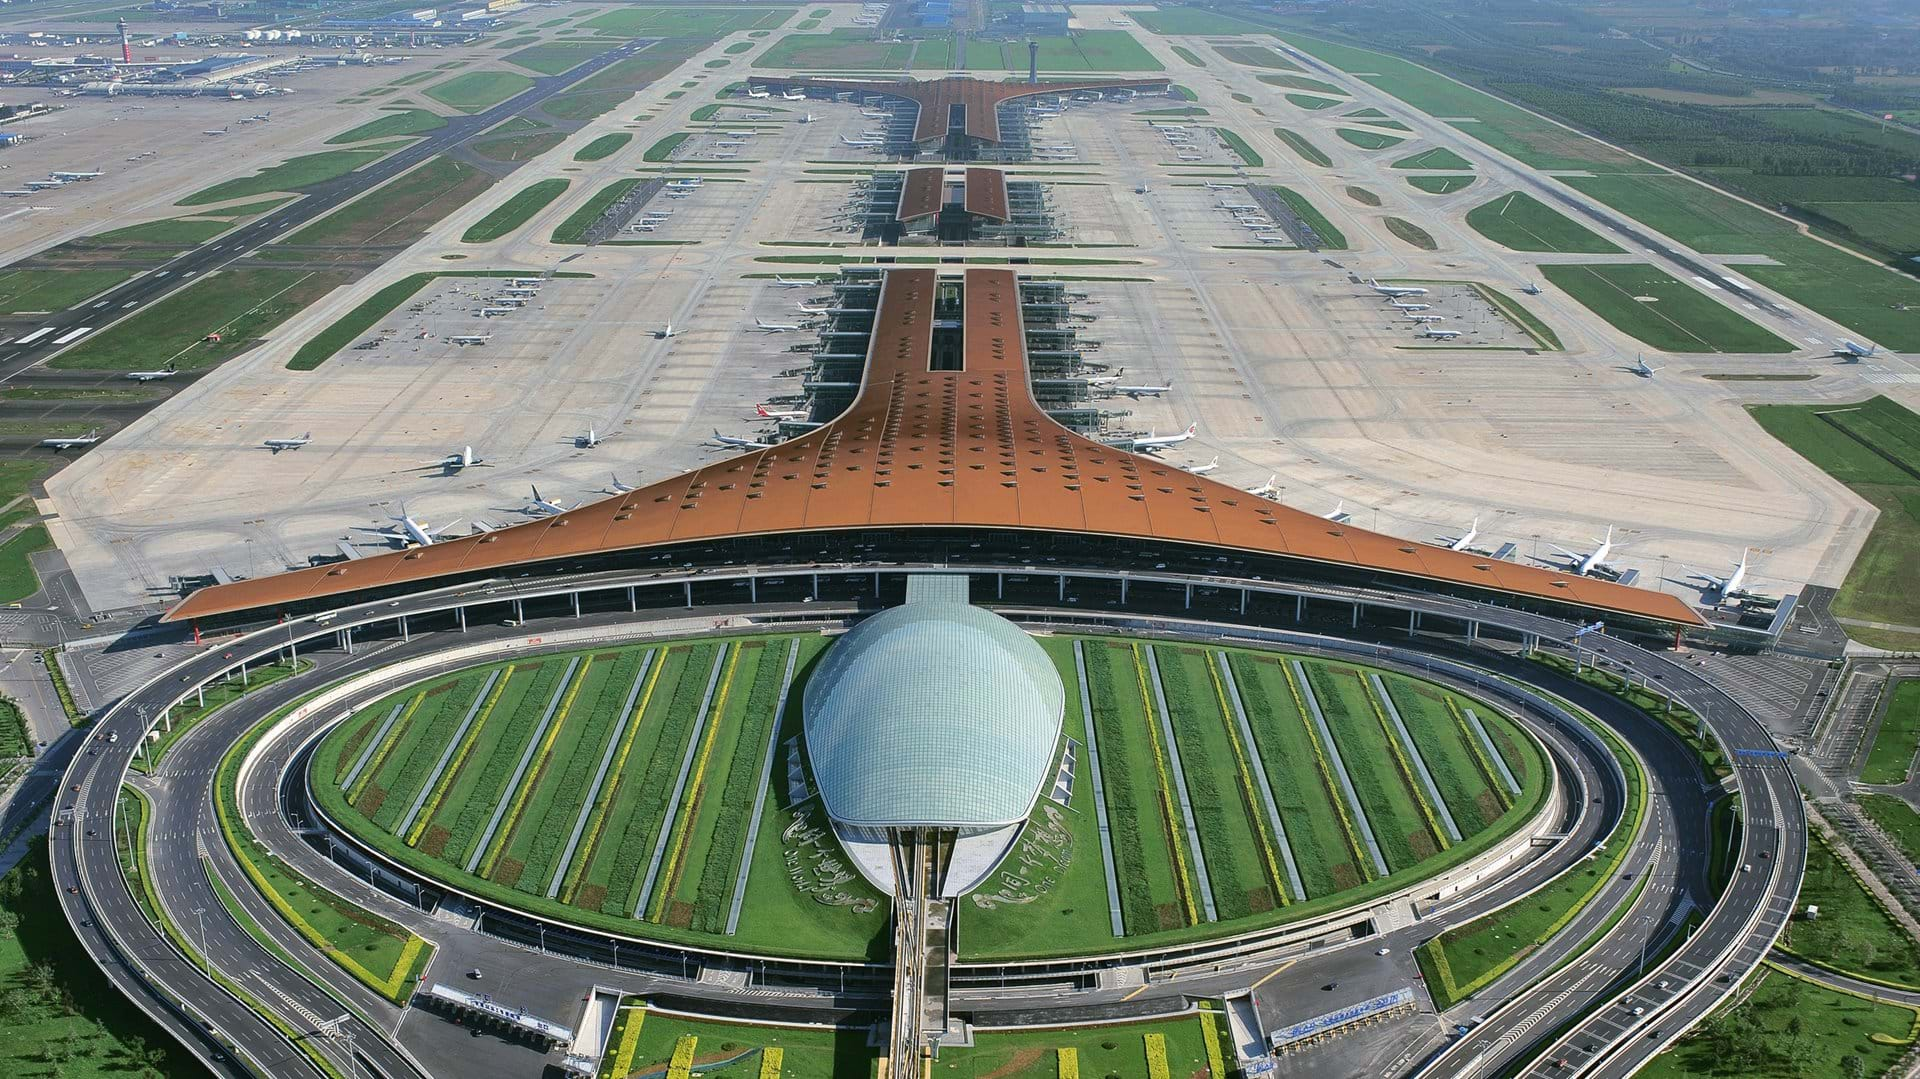 25 Projects by Norman Foster that made him a leader in the Architecture Industry - Beijing Capital International Airport, China